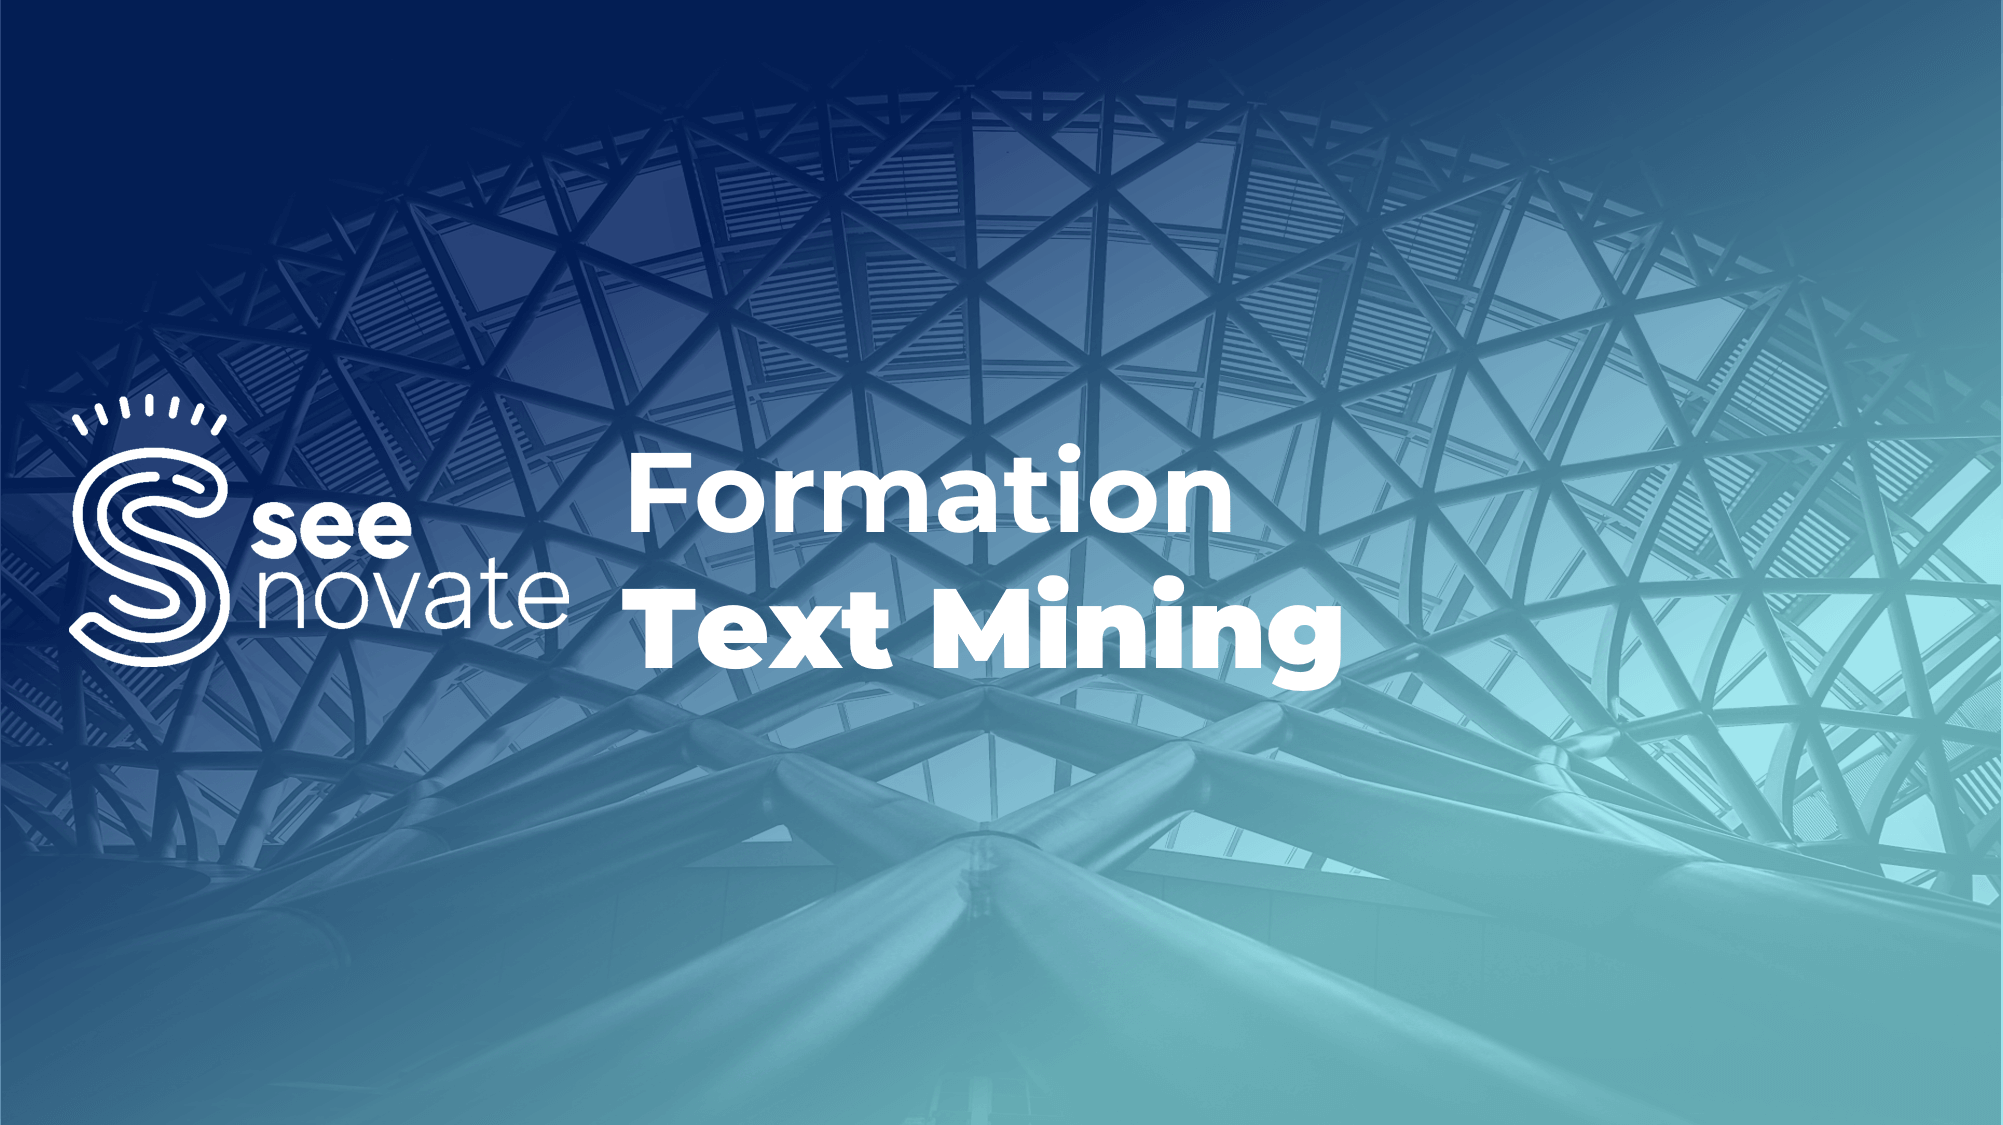 formation seenovate text mining